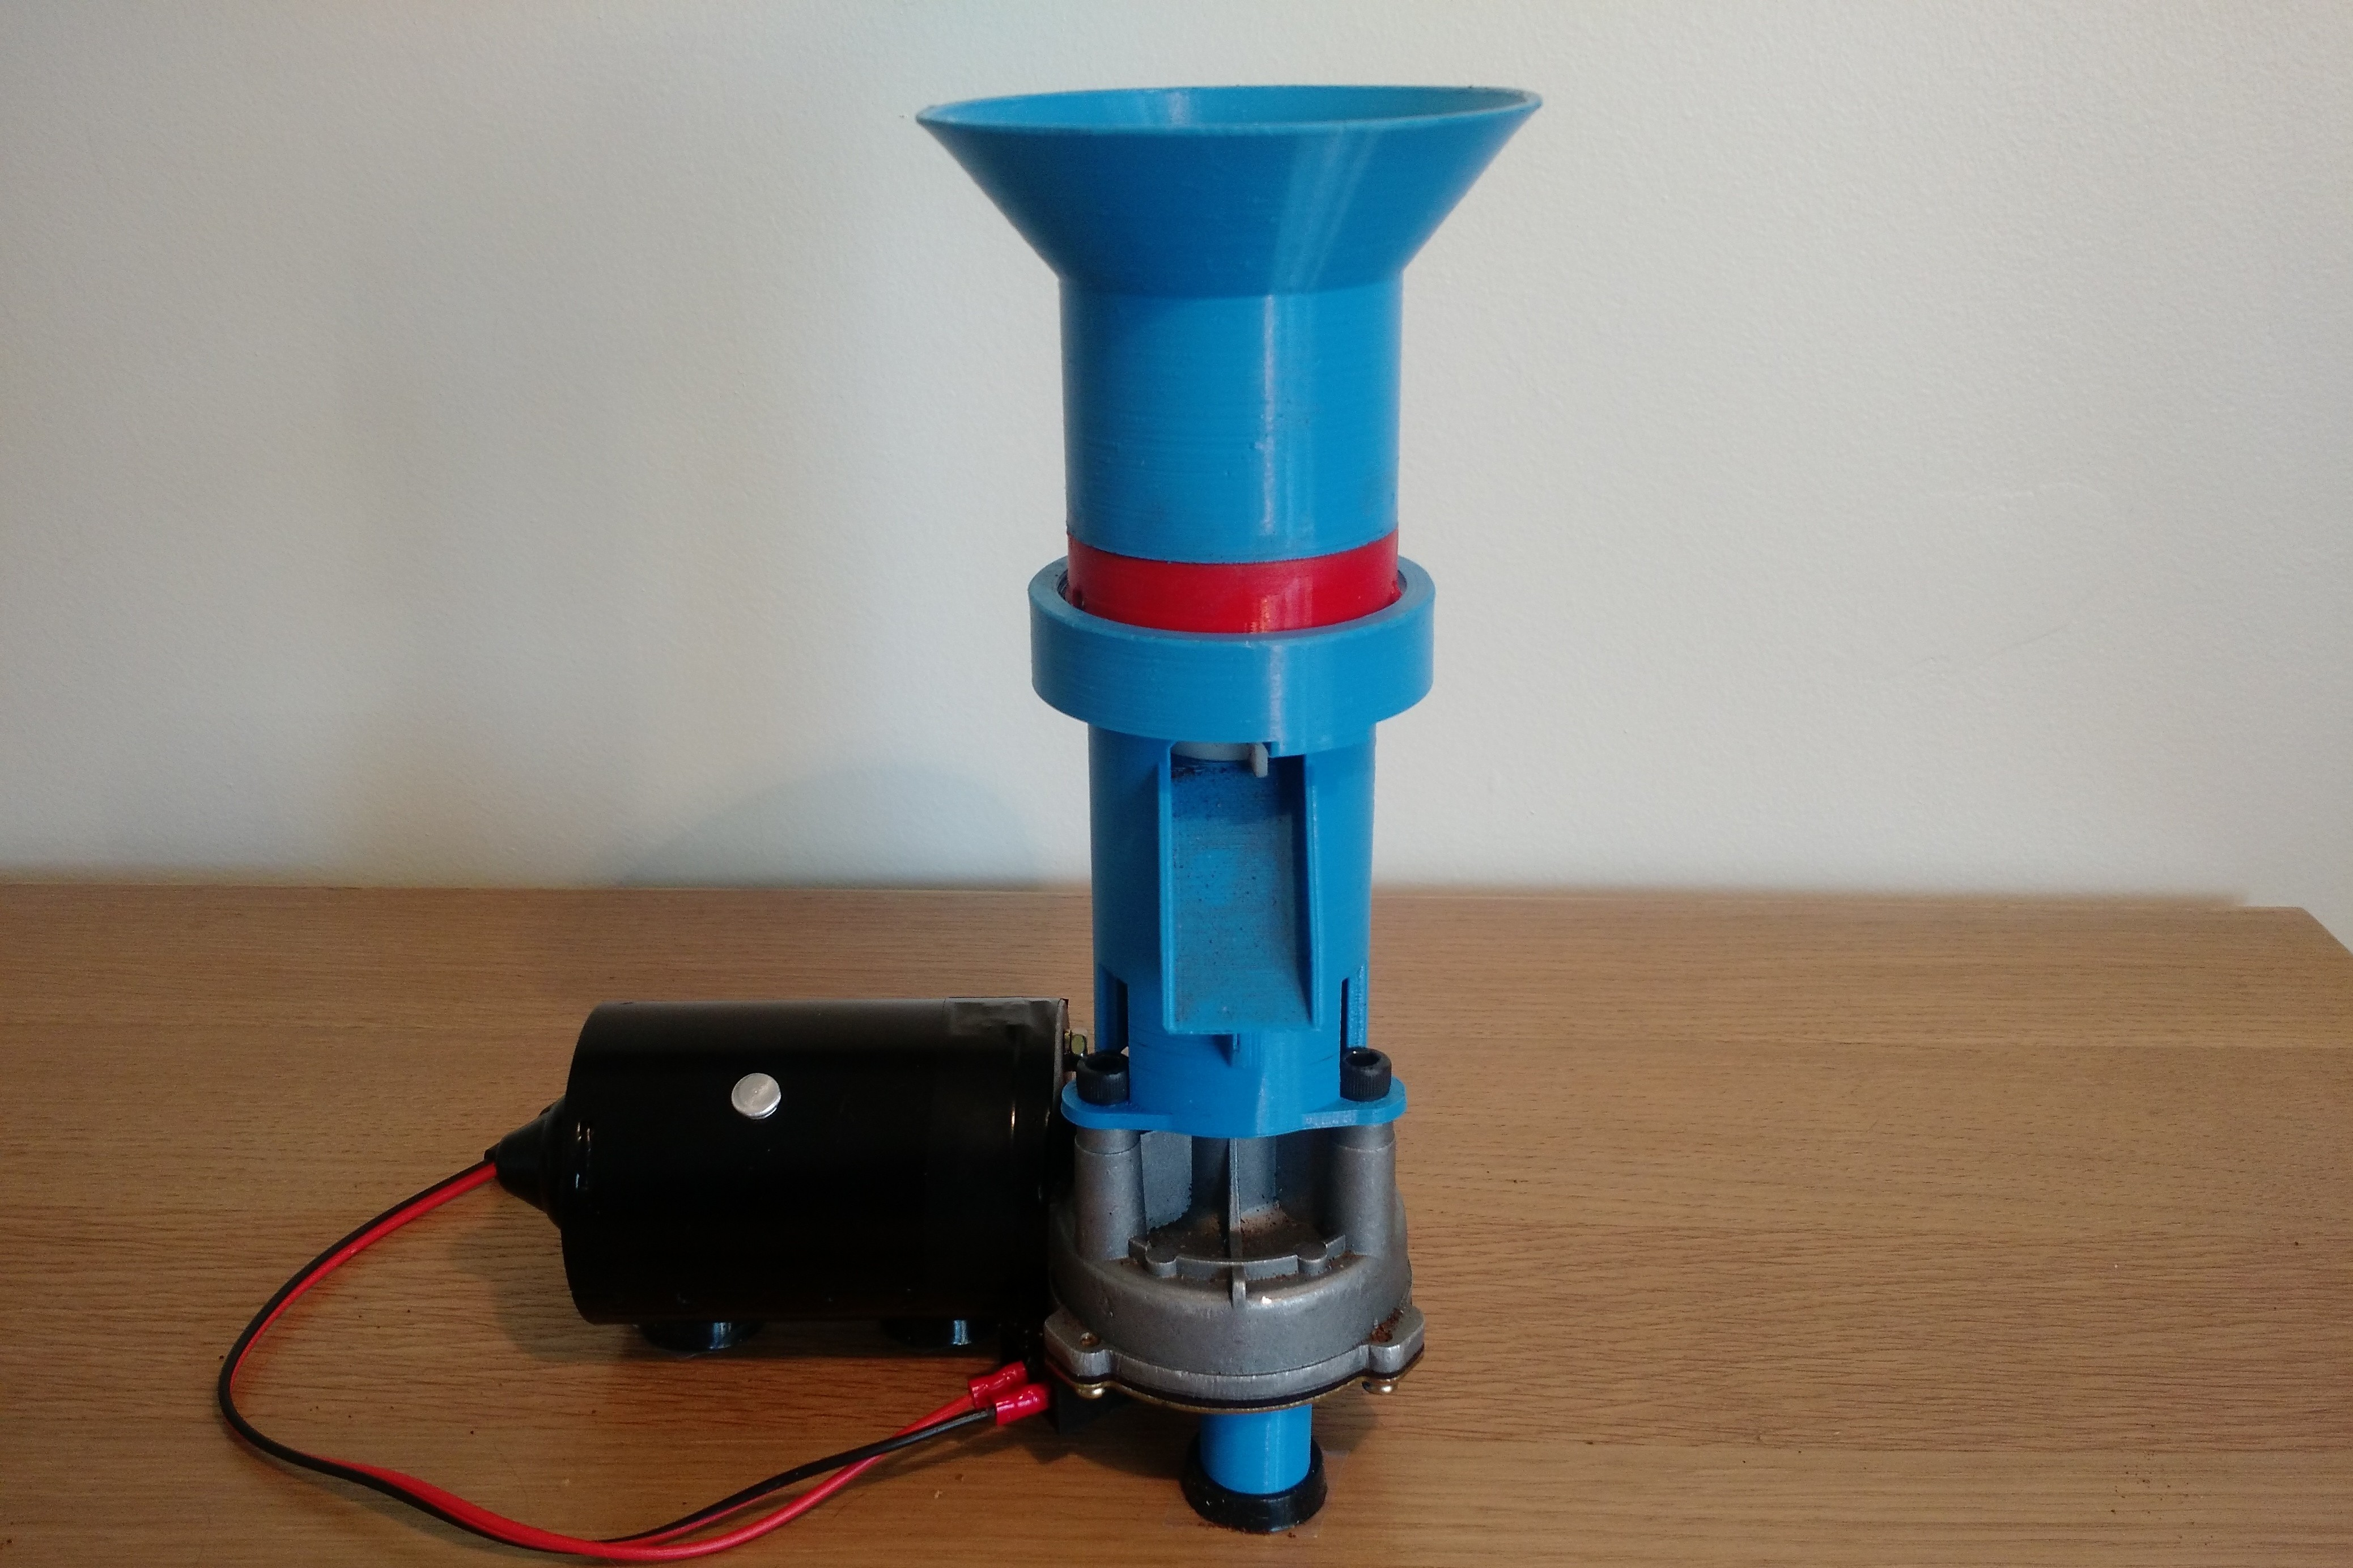 Picture of 3D Printed Coffee Grinder